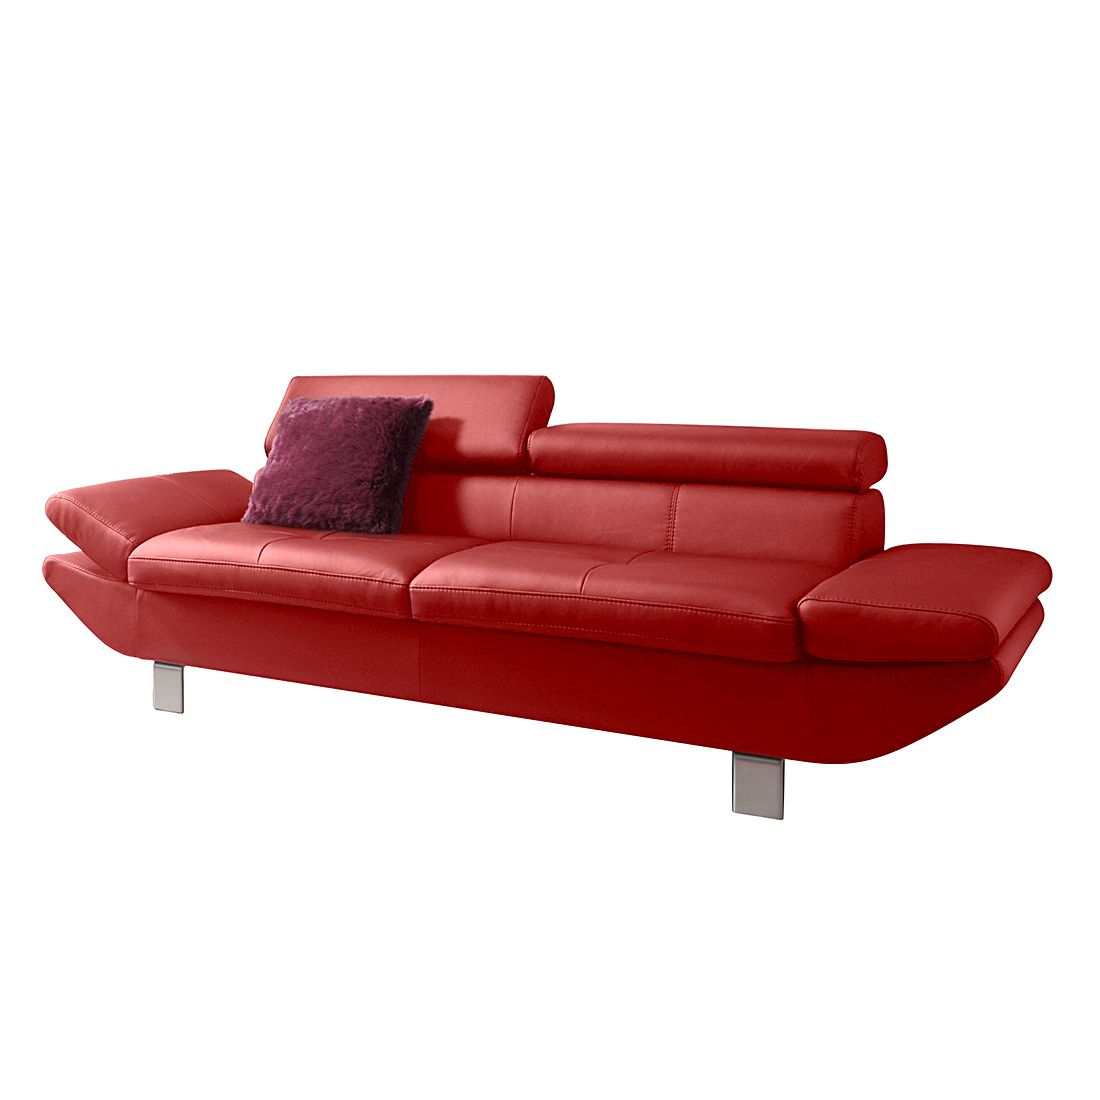 sofa fries 2 sitzer kunstleder rot cotta online bestellen. Black Bedroom Furniture Sets. Home Design Ideas